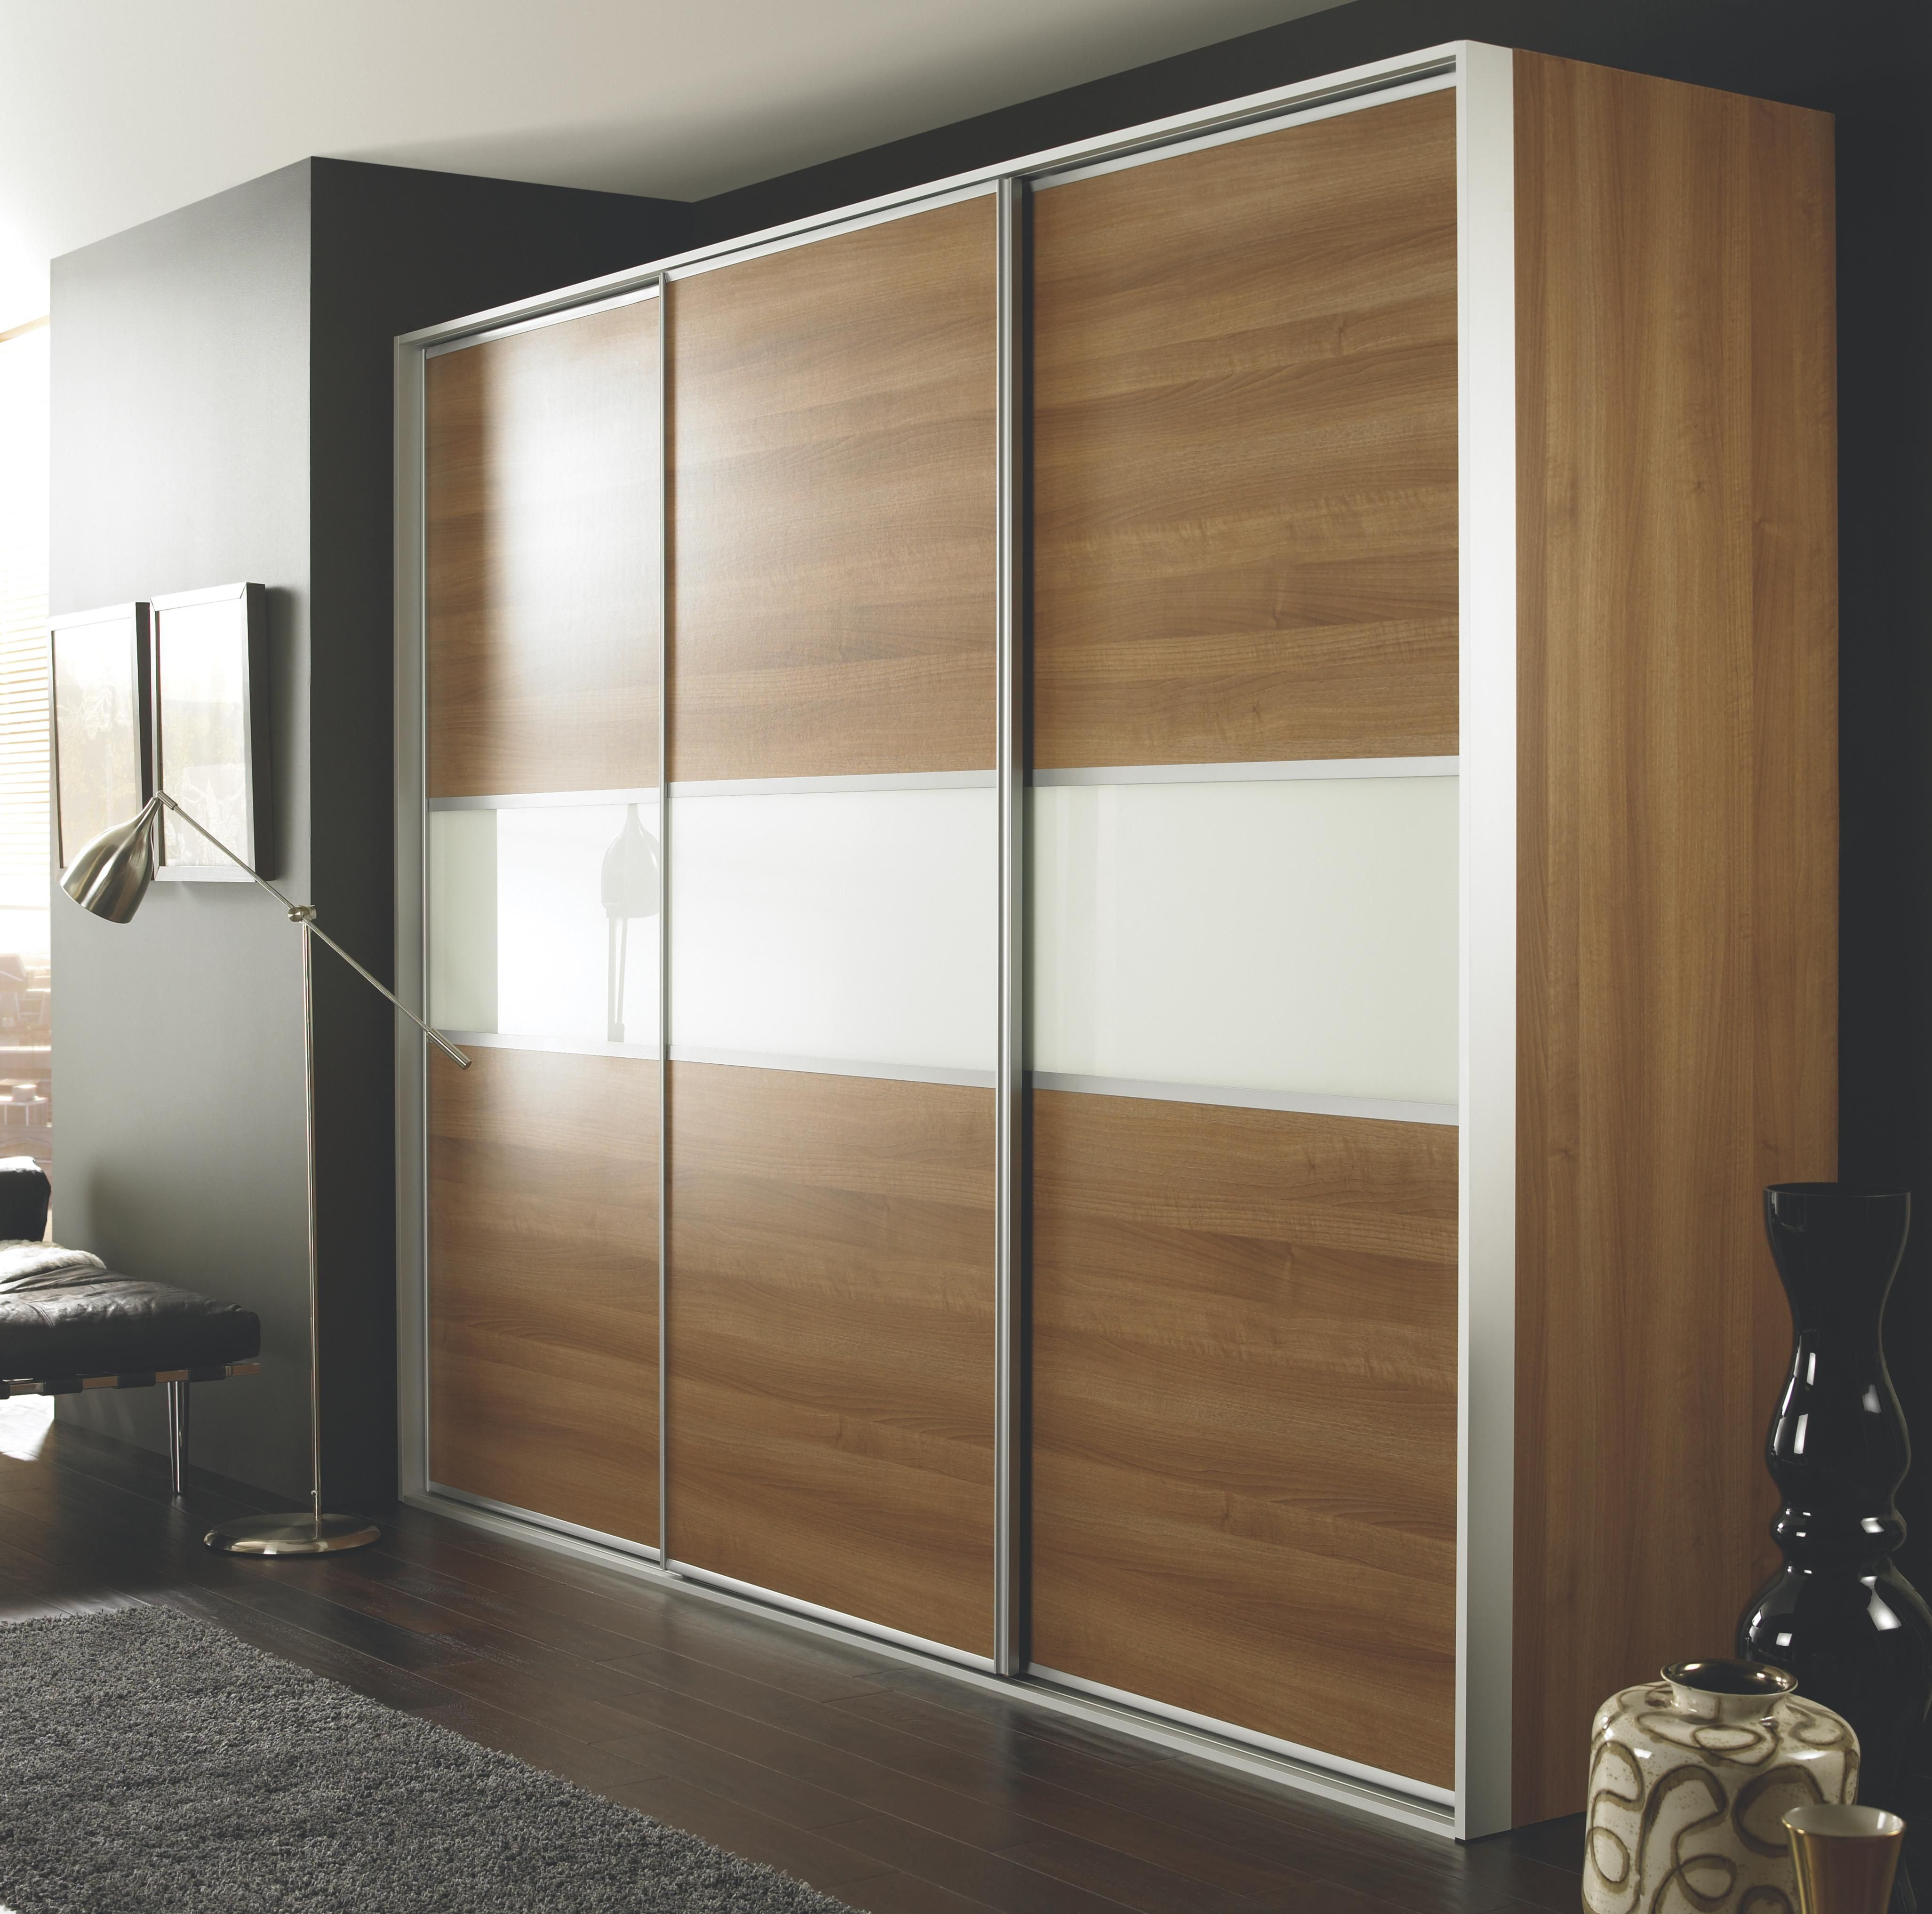 Freestanding Sliding Wardrobes Offer Quick